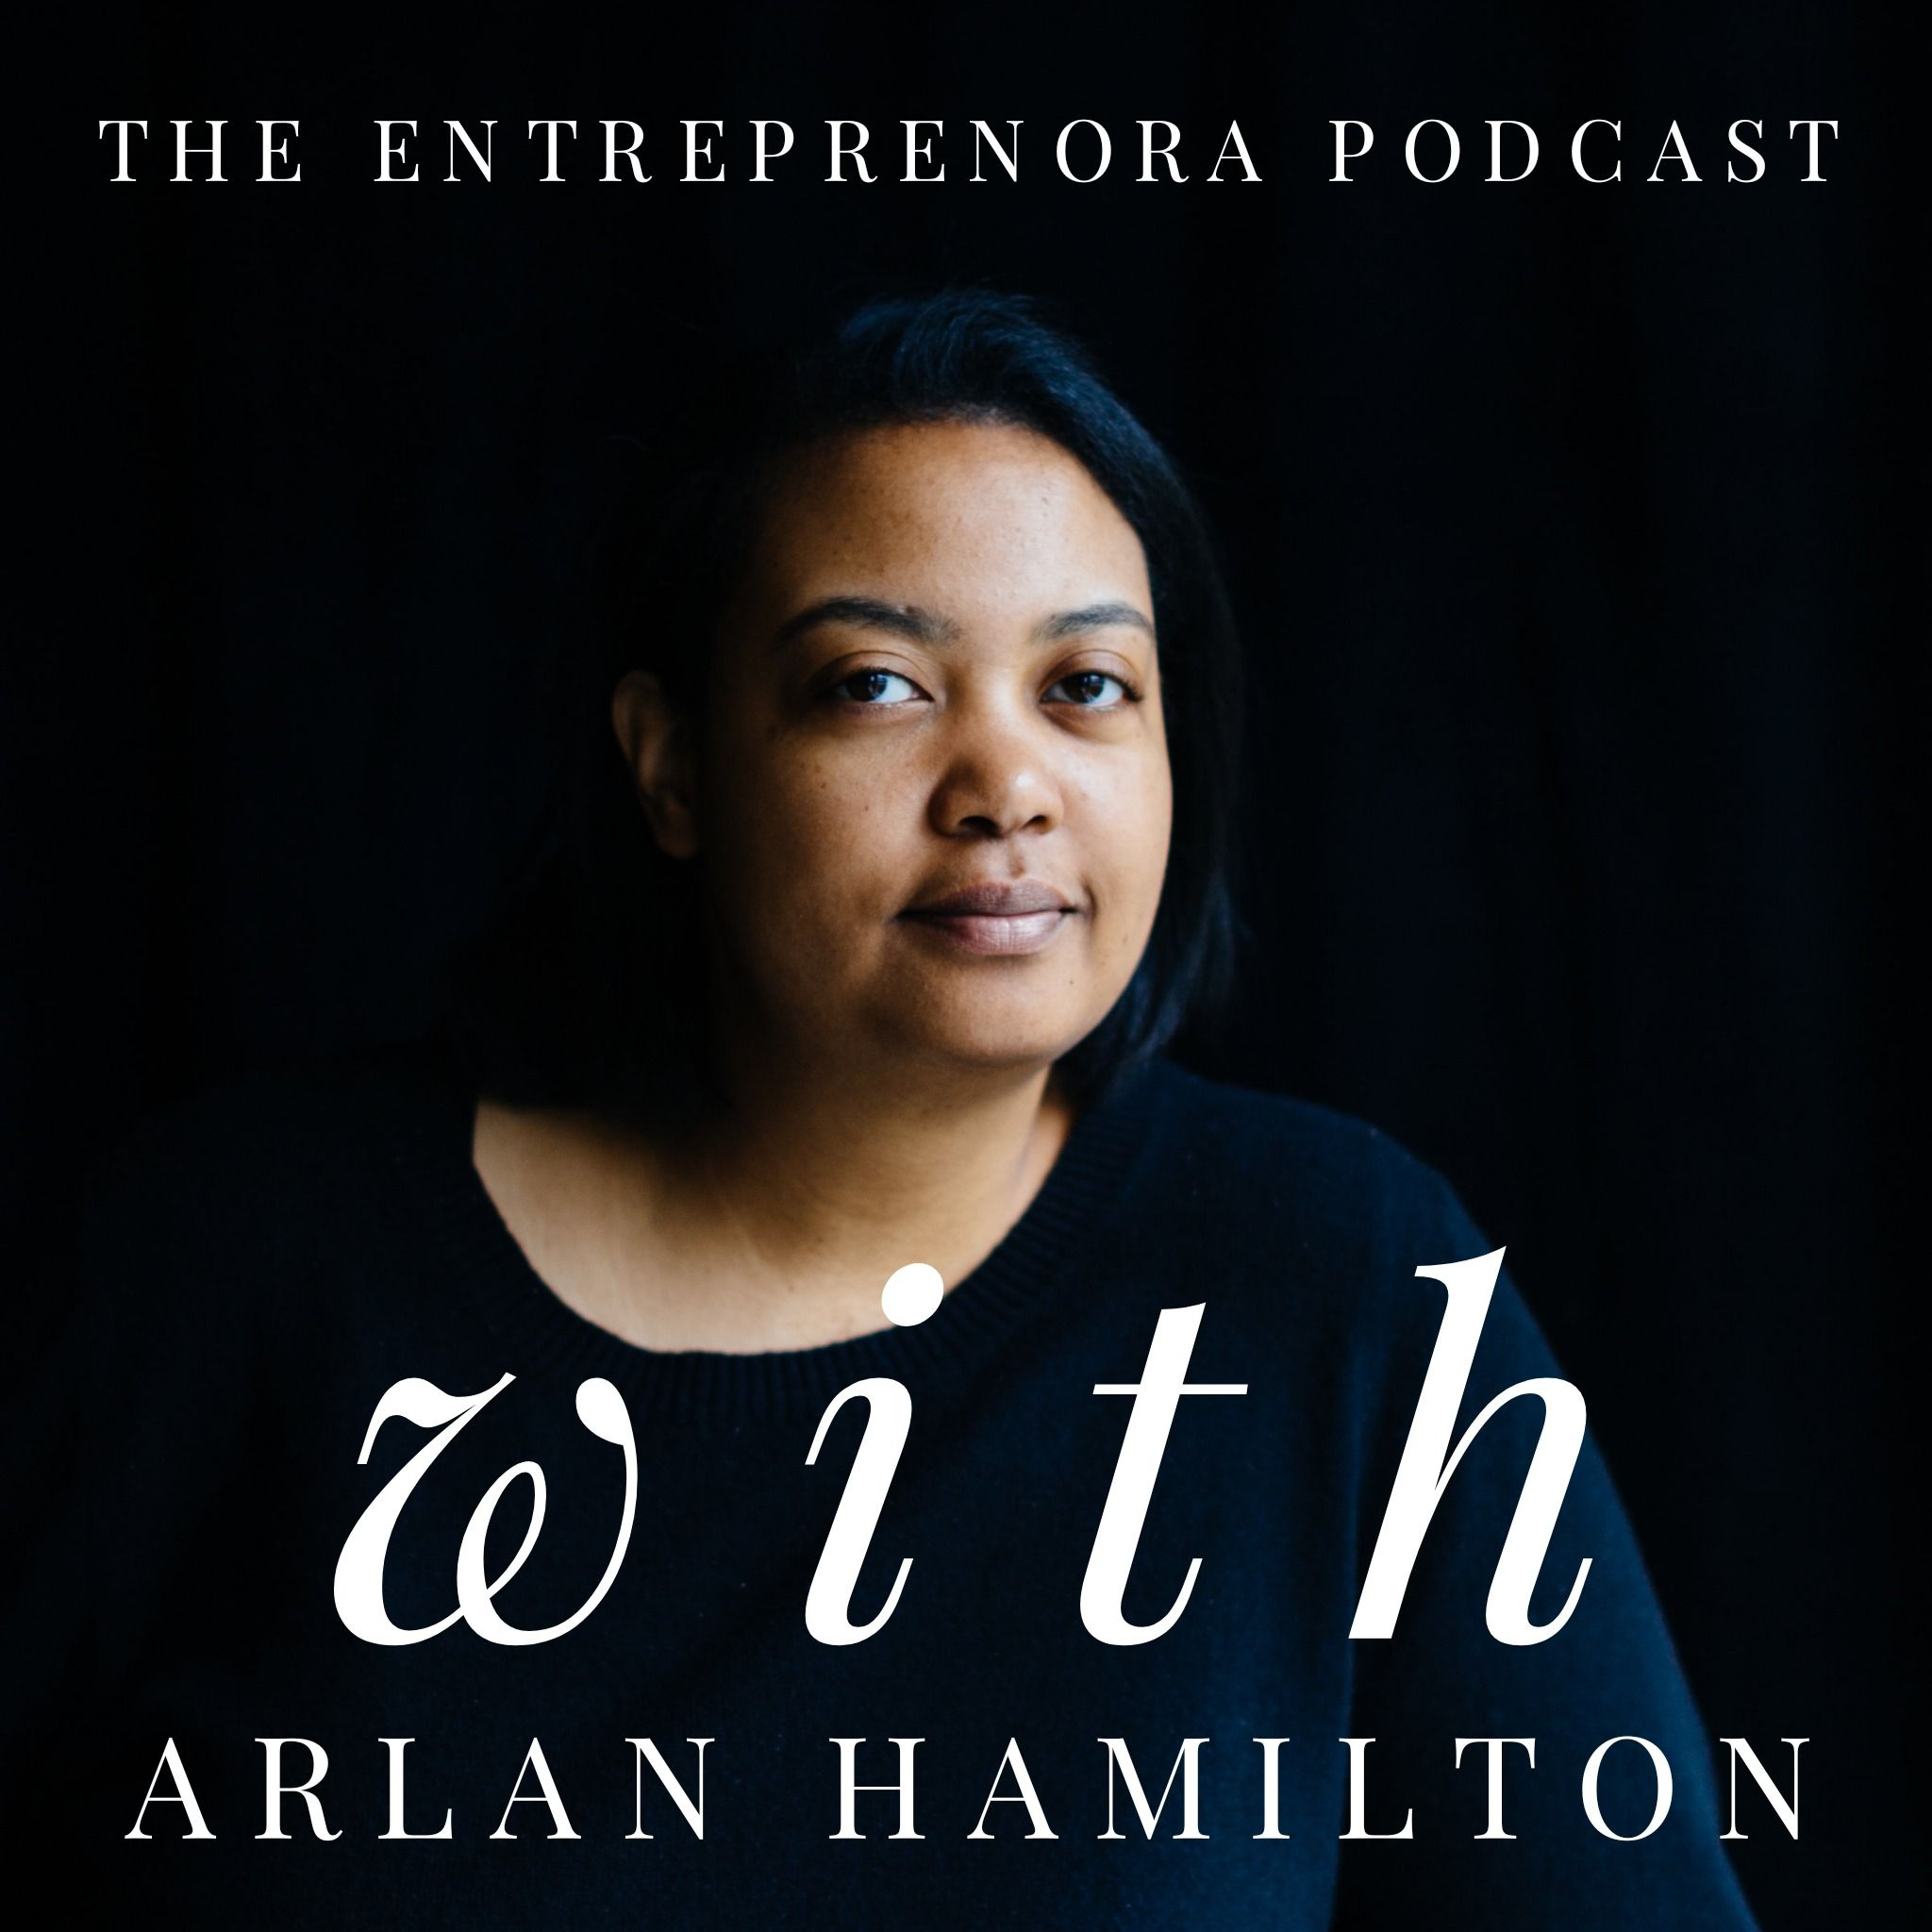 with Arlan Hamilton, founder of Backstage Capital